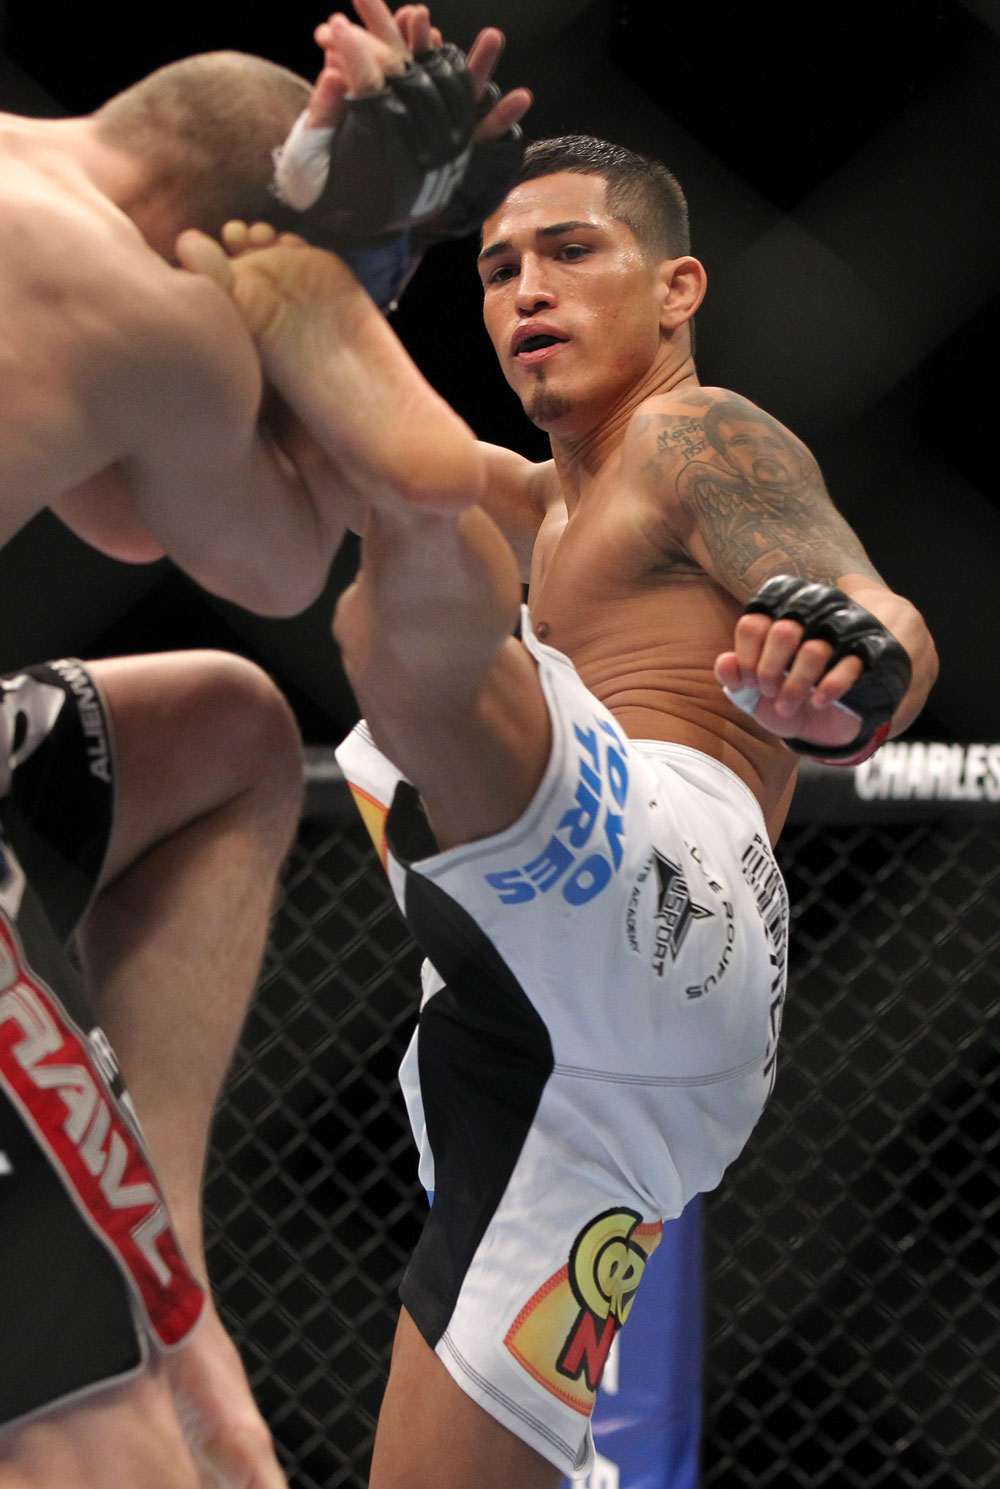 SAITAMA, JAPAN - FEBRUARY 26:  (R-L) Anthony Pettis kicks Joe Lauzon during the UFC 144 event at Saitama Super Arena on February 26, 2012 in Saitama, Japan.  (Photo by Josh Hedges/Zuffa LLC/Zuffa LLC via Getty Images) *** Local Caption *** Anthony Pettis; Joe Lauzon